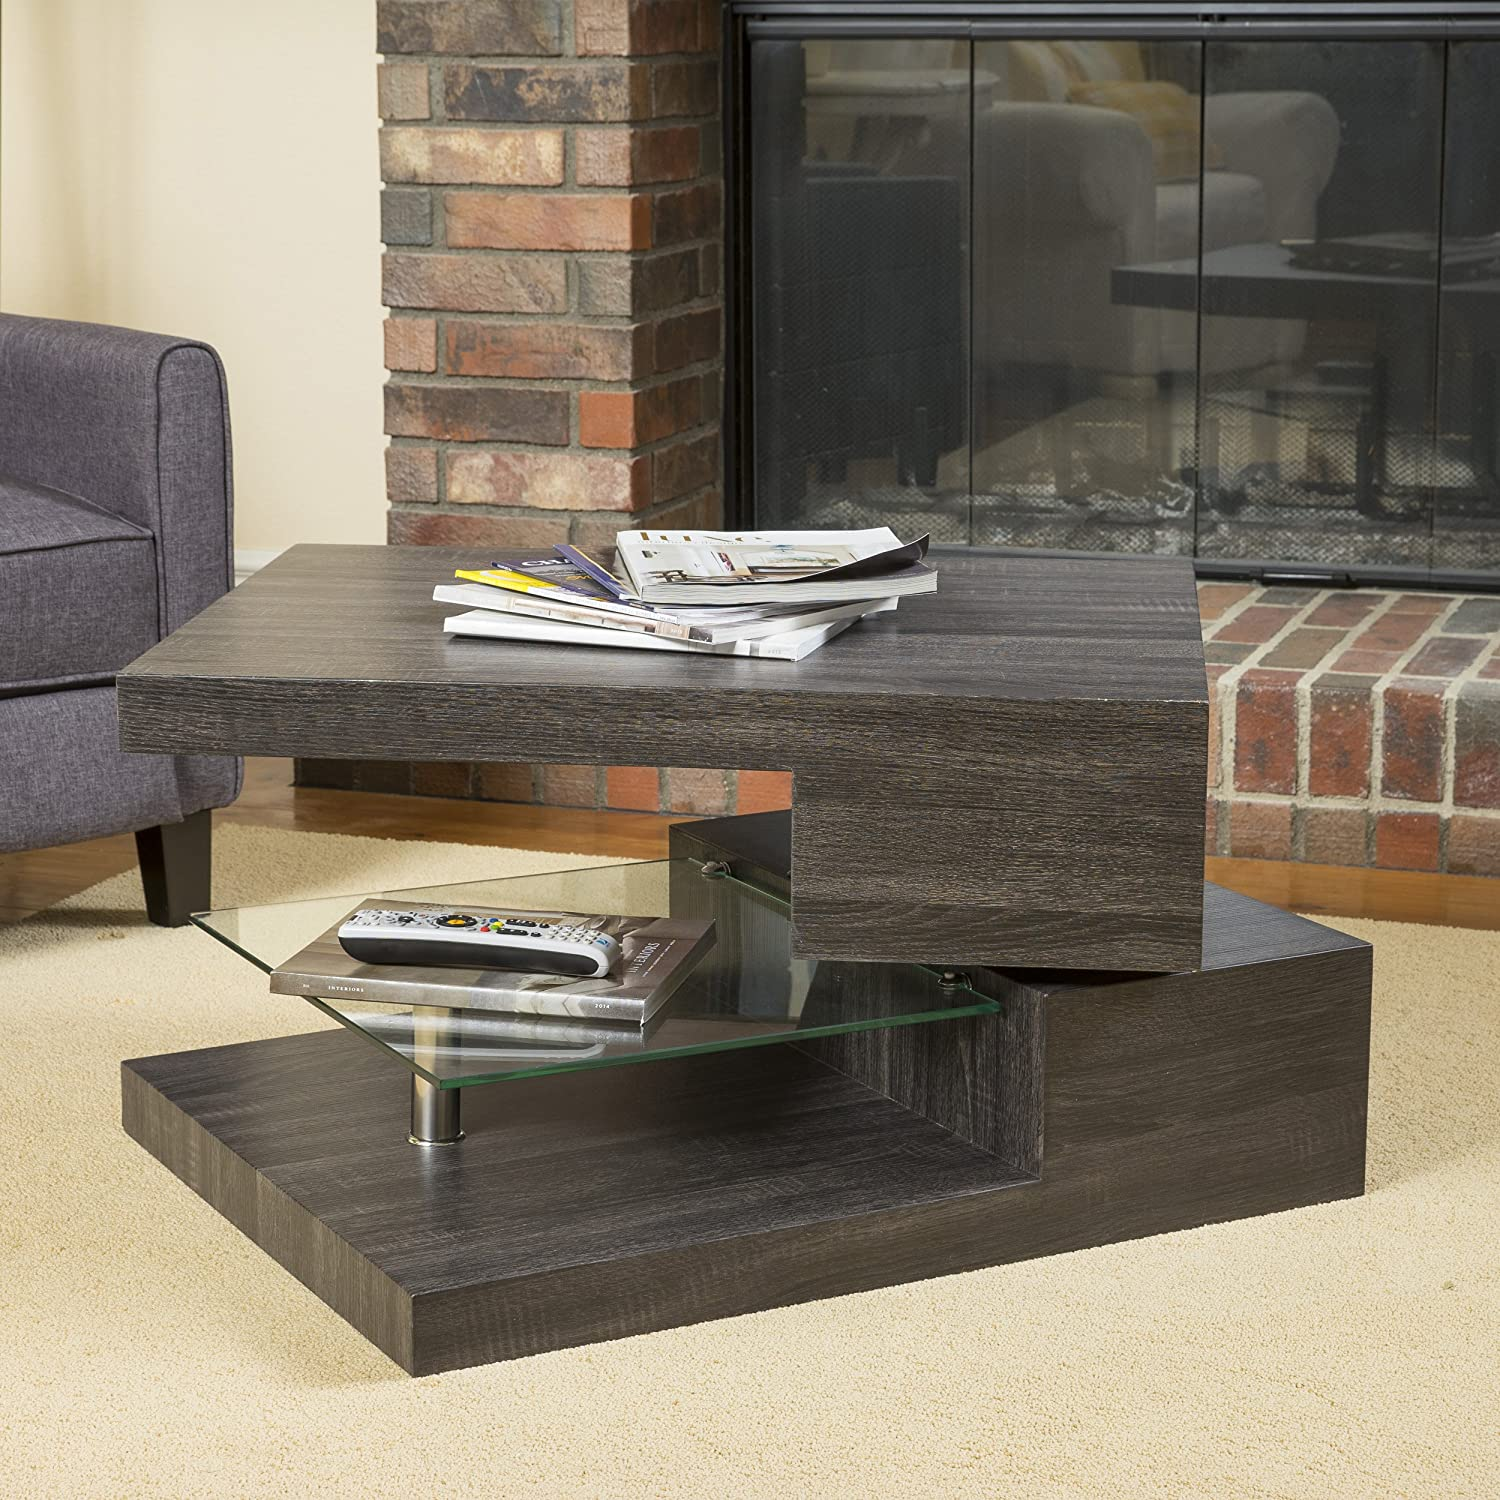 15 coffee tables under 200 unique modern cool wood glass details geotapseo Gallery